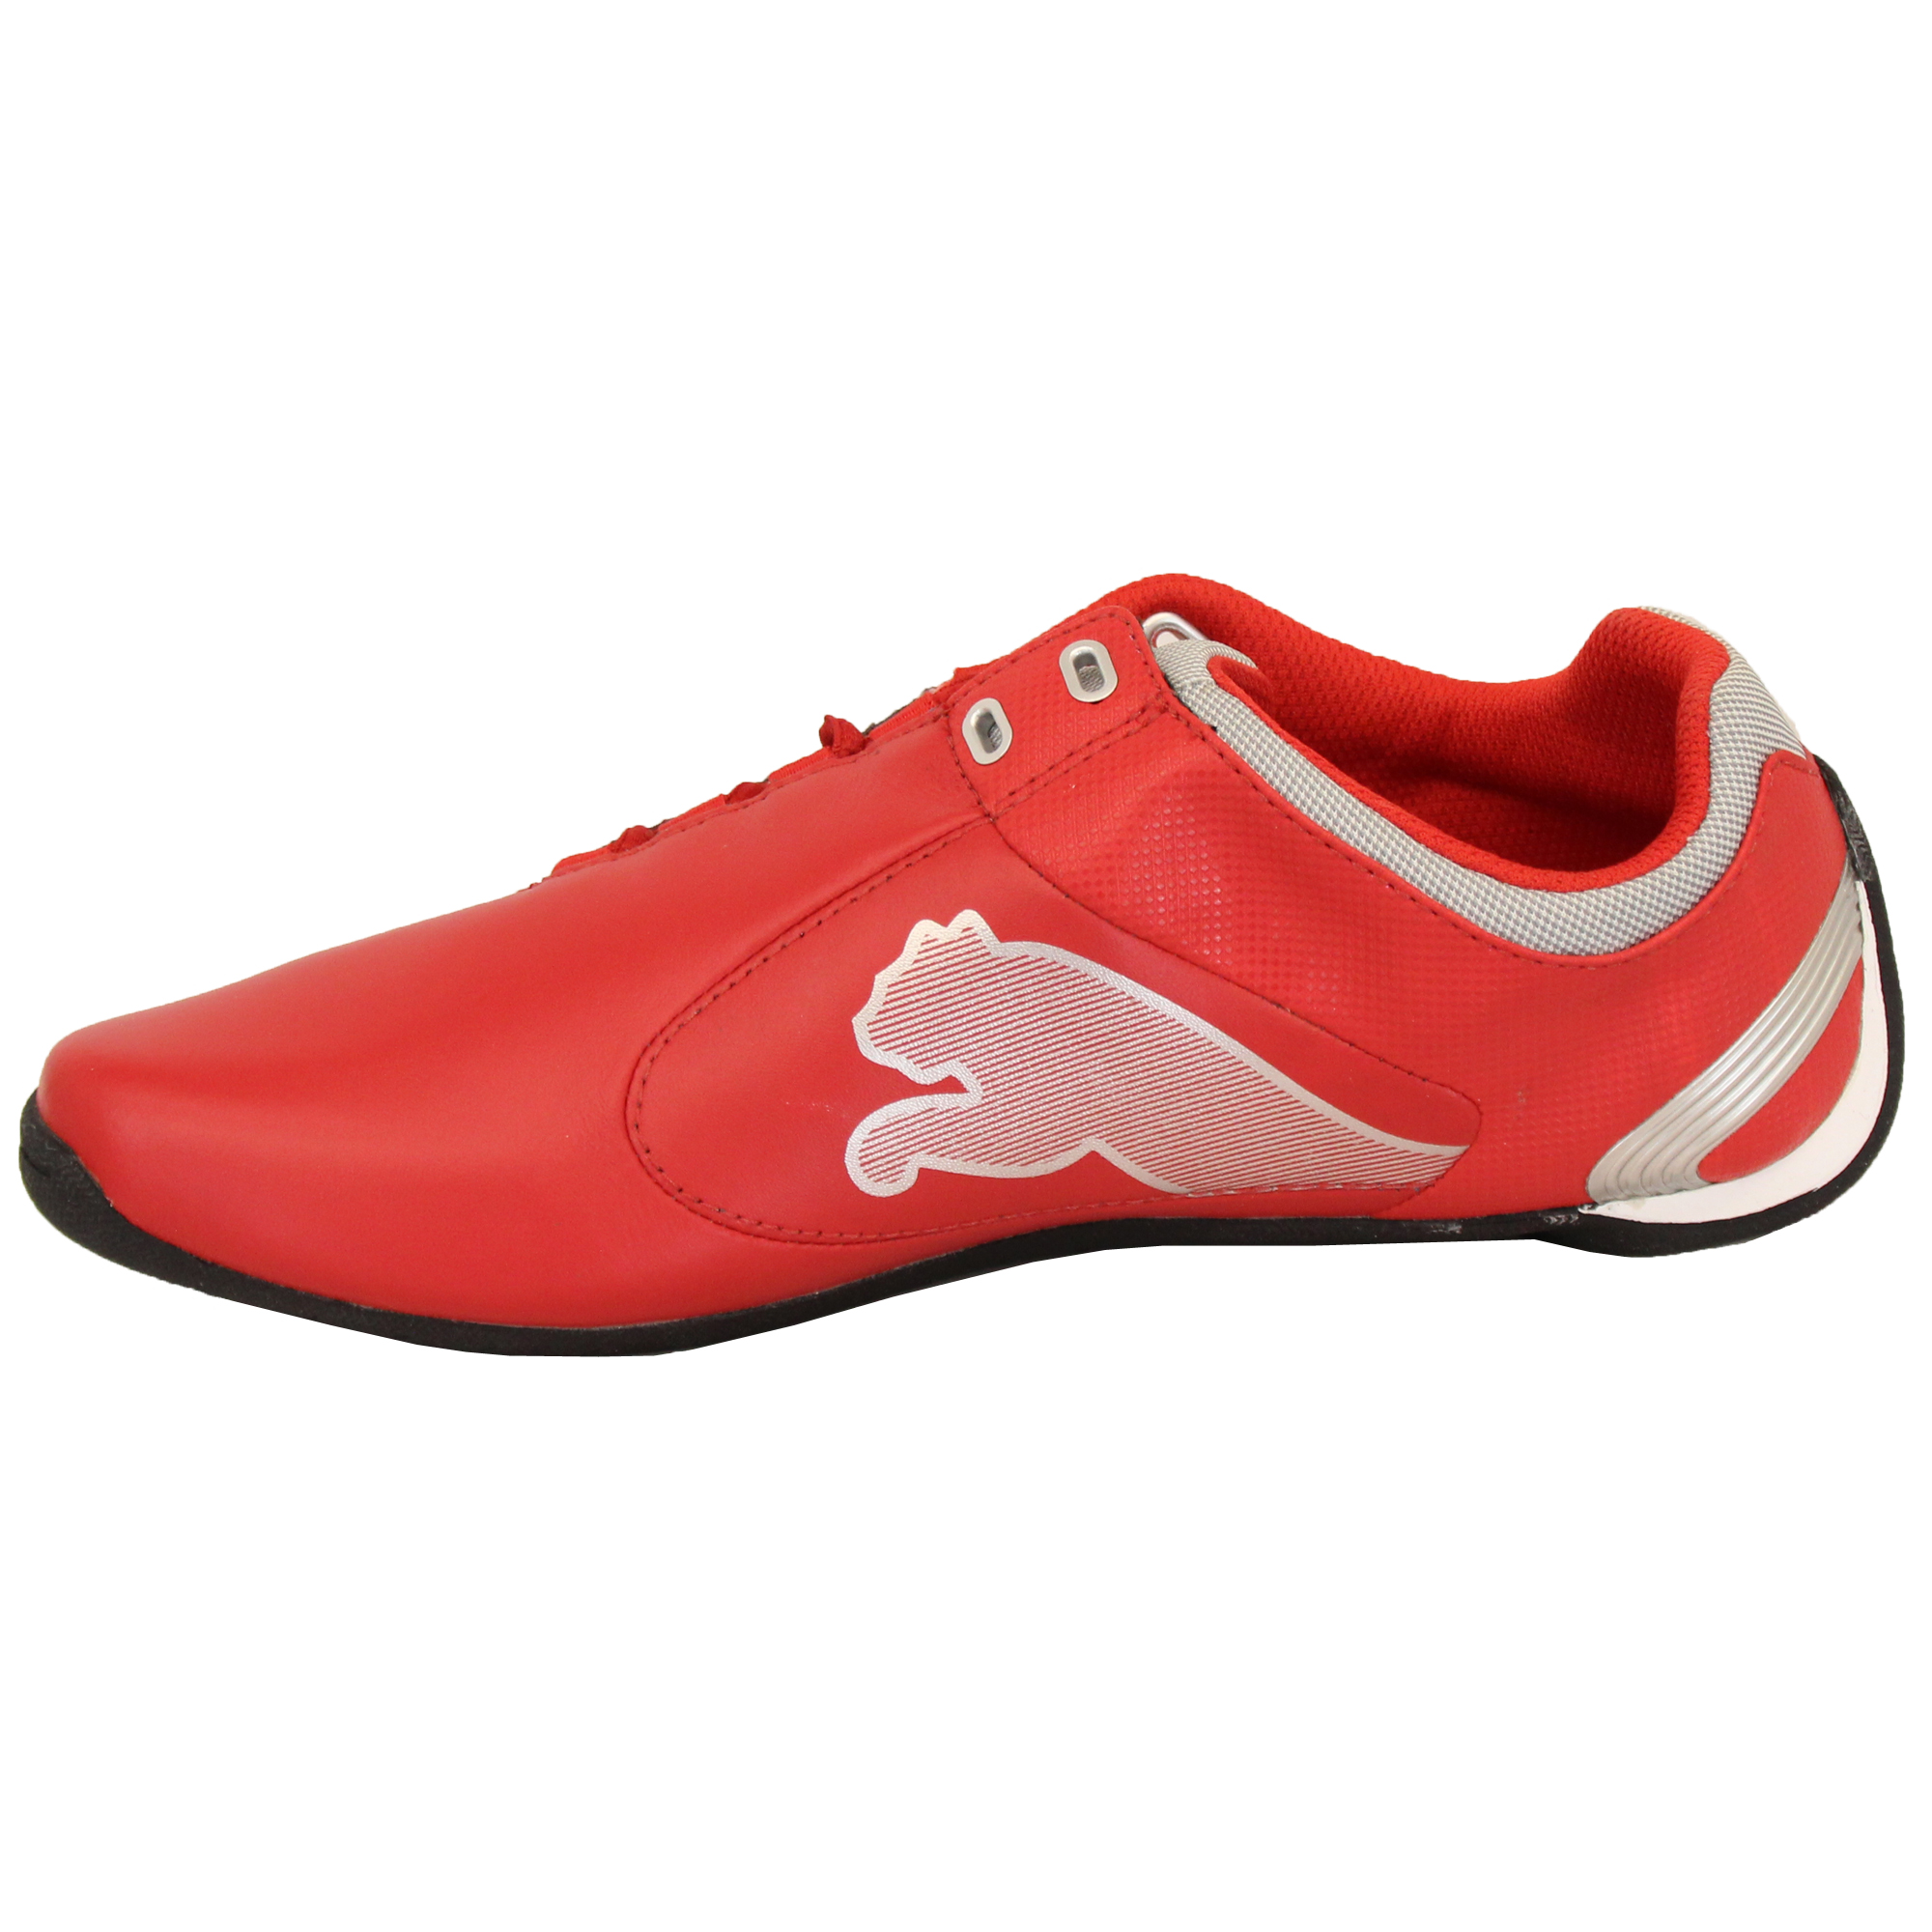 Boys-PUMA-Ferrari-Leather-Trainers-Kids-Evo-Power-Speed-Cat-Sports-Shoes-Casual thumbnail 3